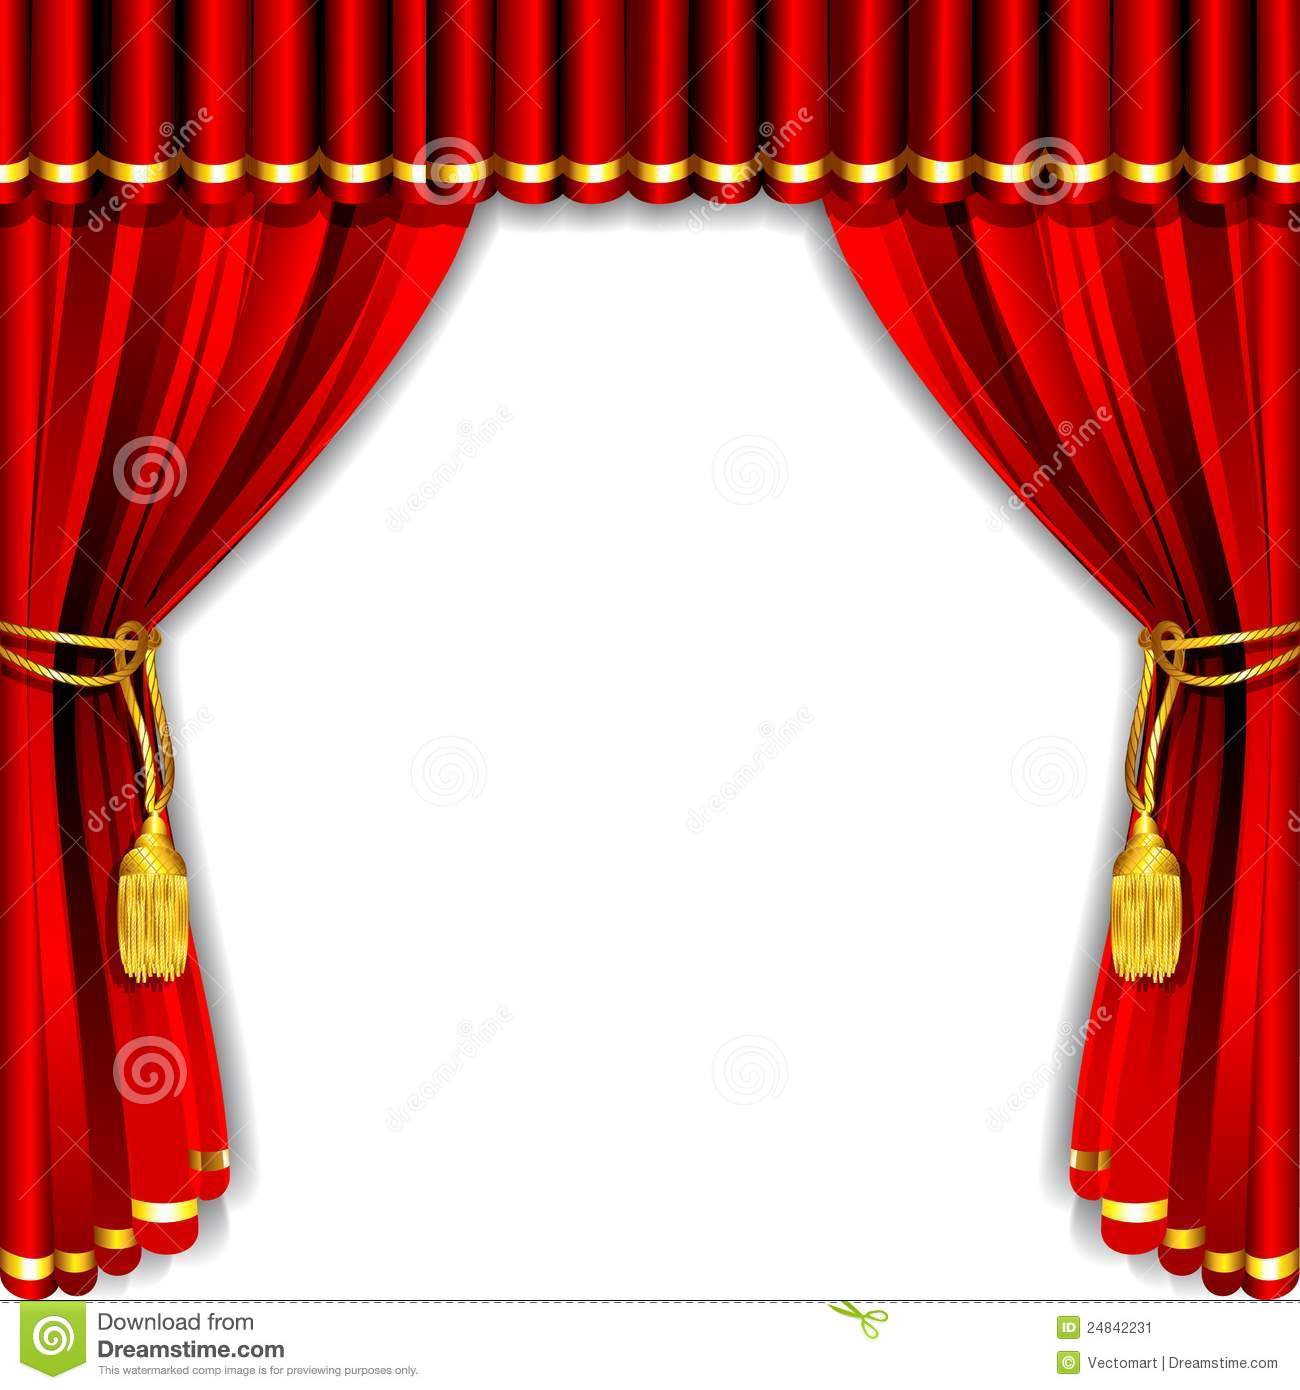 Real open stage curtains - Stage Curtain